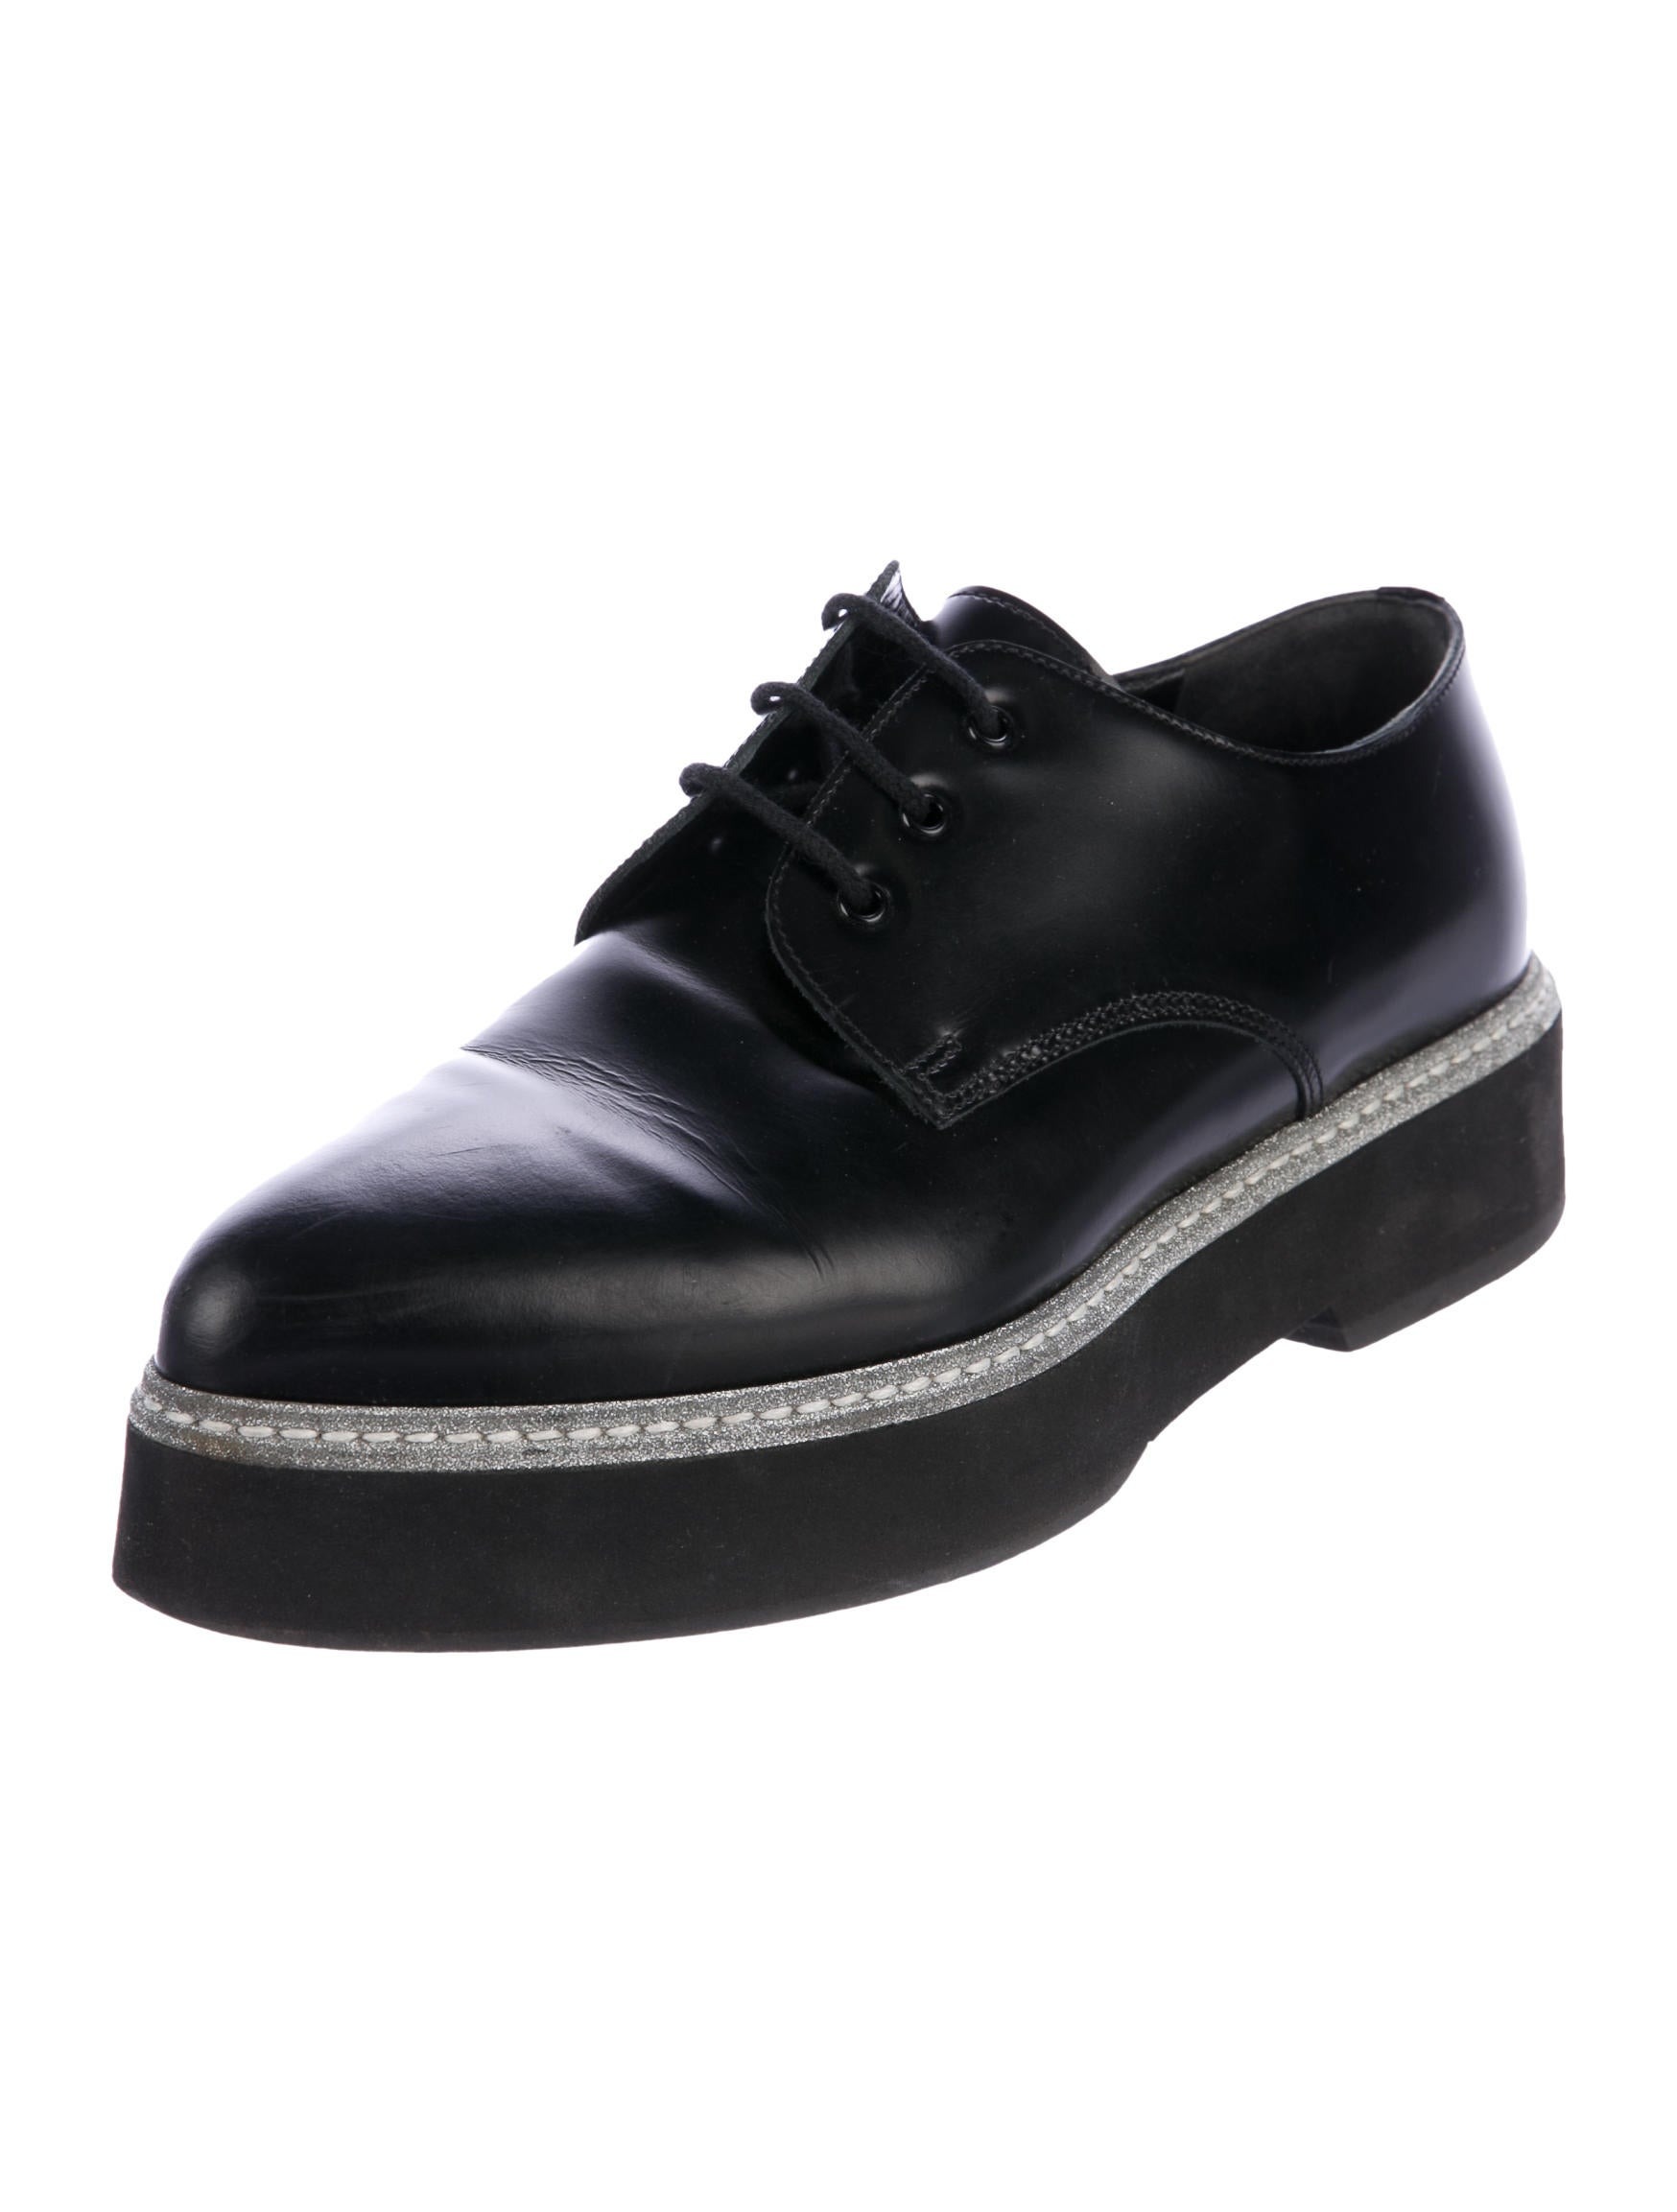 classic cheap price amazing price sale online Alexander McQueen Platform Leather Oxfords low price for sale footaction online 8HhZu